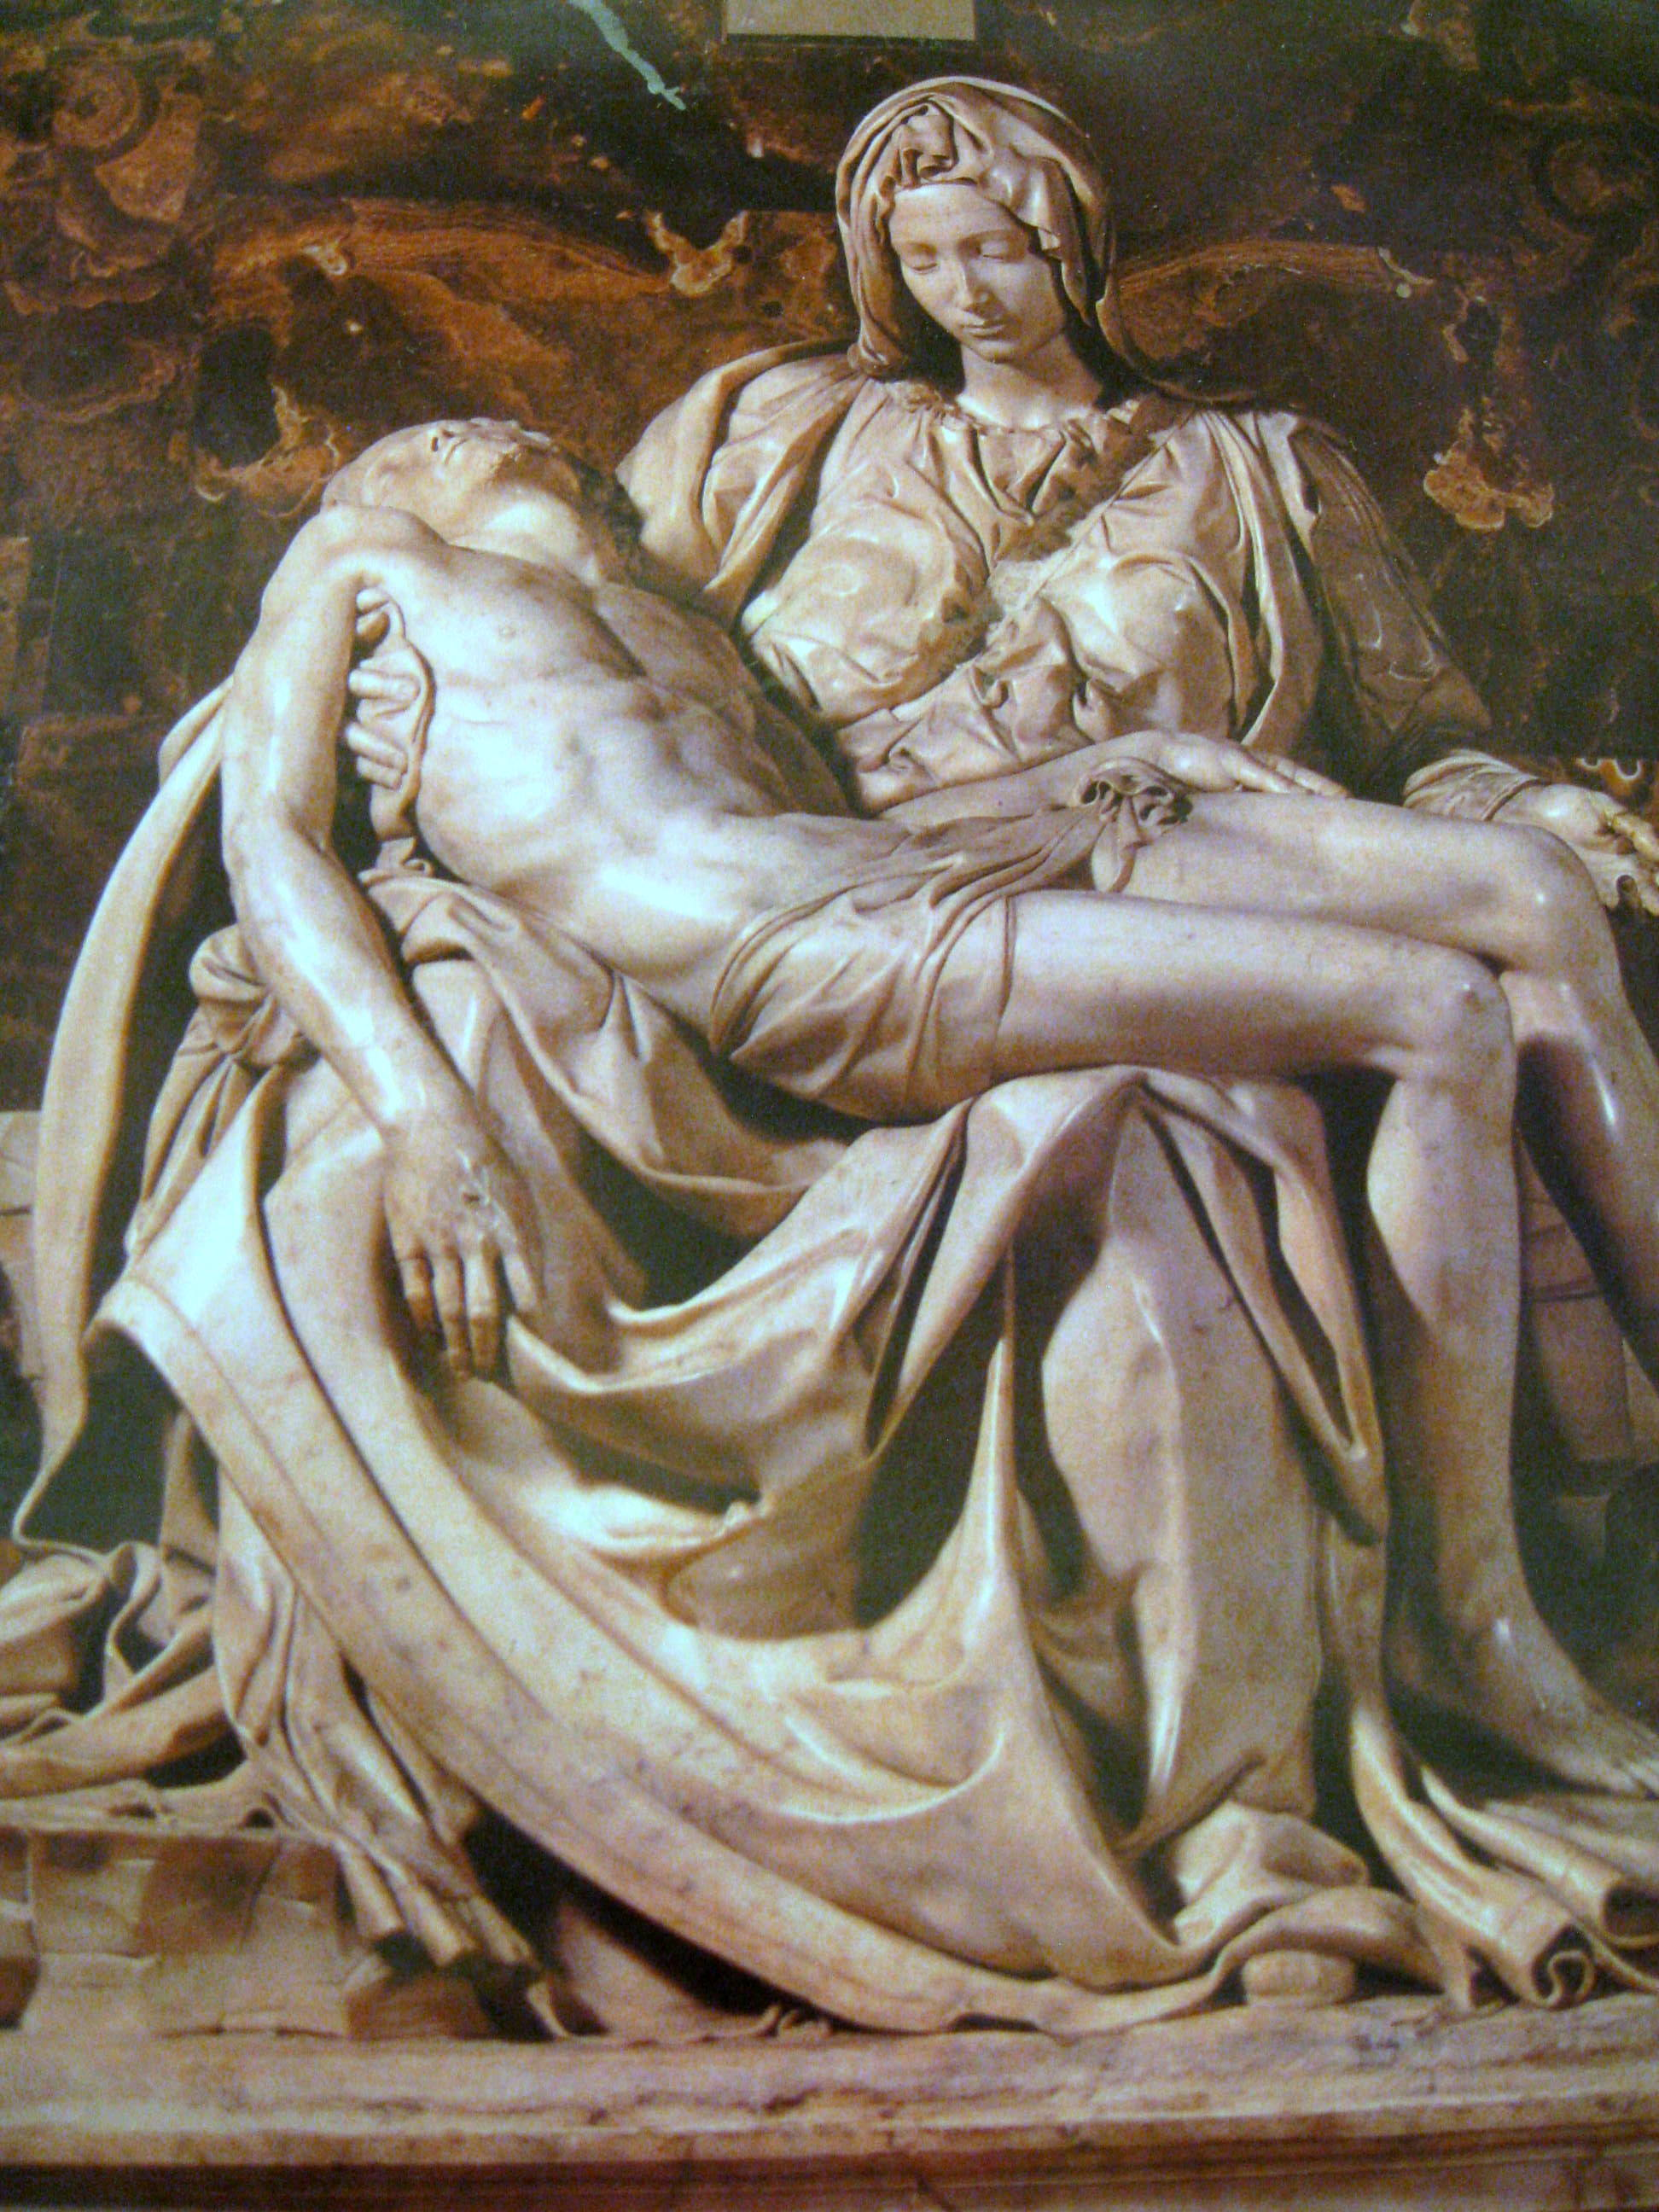 a biography of michelangelo buonarroti the most potent force in the italian high renaissance Michelangelo michelangelo buonarroti biography michelangelo the most potent force in the italian high renaissance.